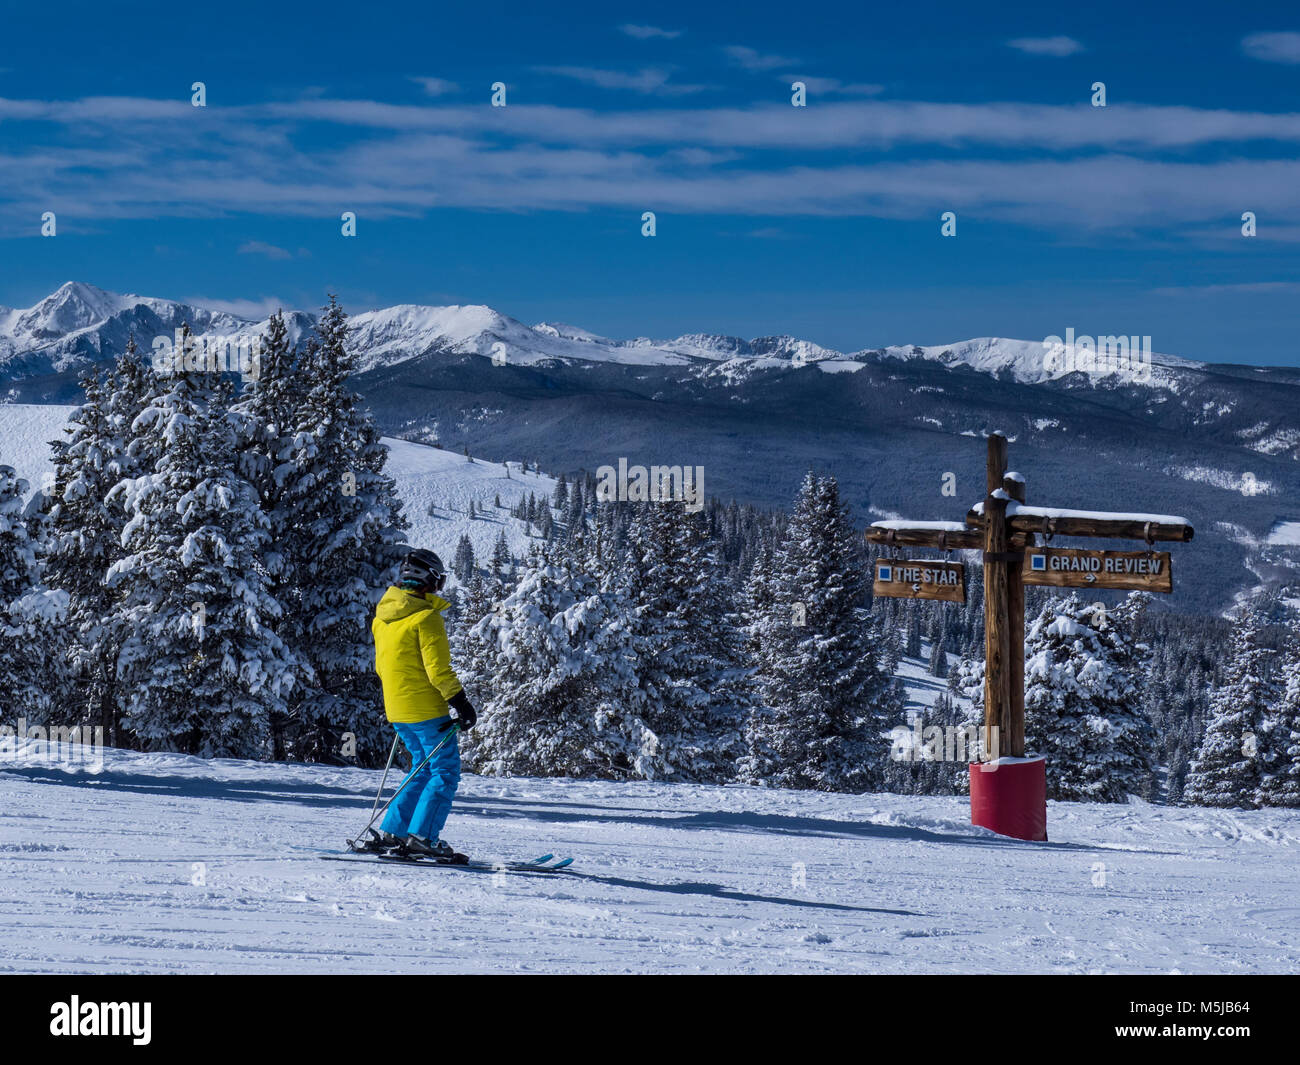 Kreuzung der Star und Grand Review Loipen, Winter, Blue Sky Basin, Skigebiet Vail, Vail, Colorado. Stockbild